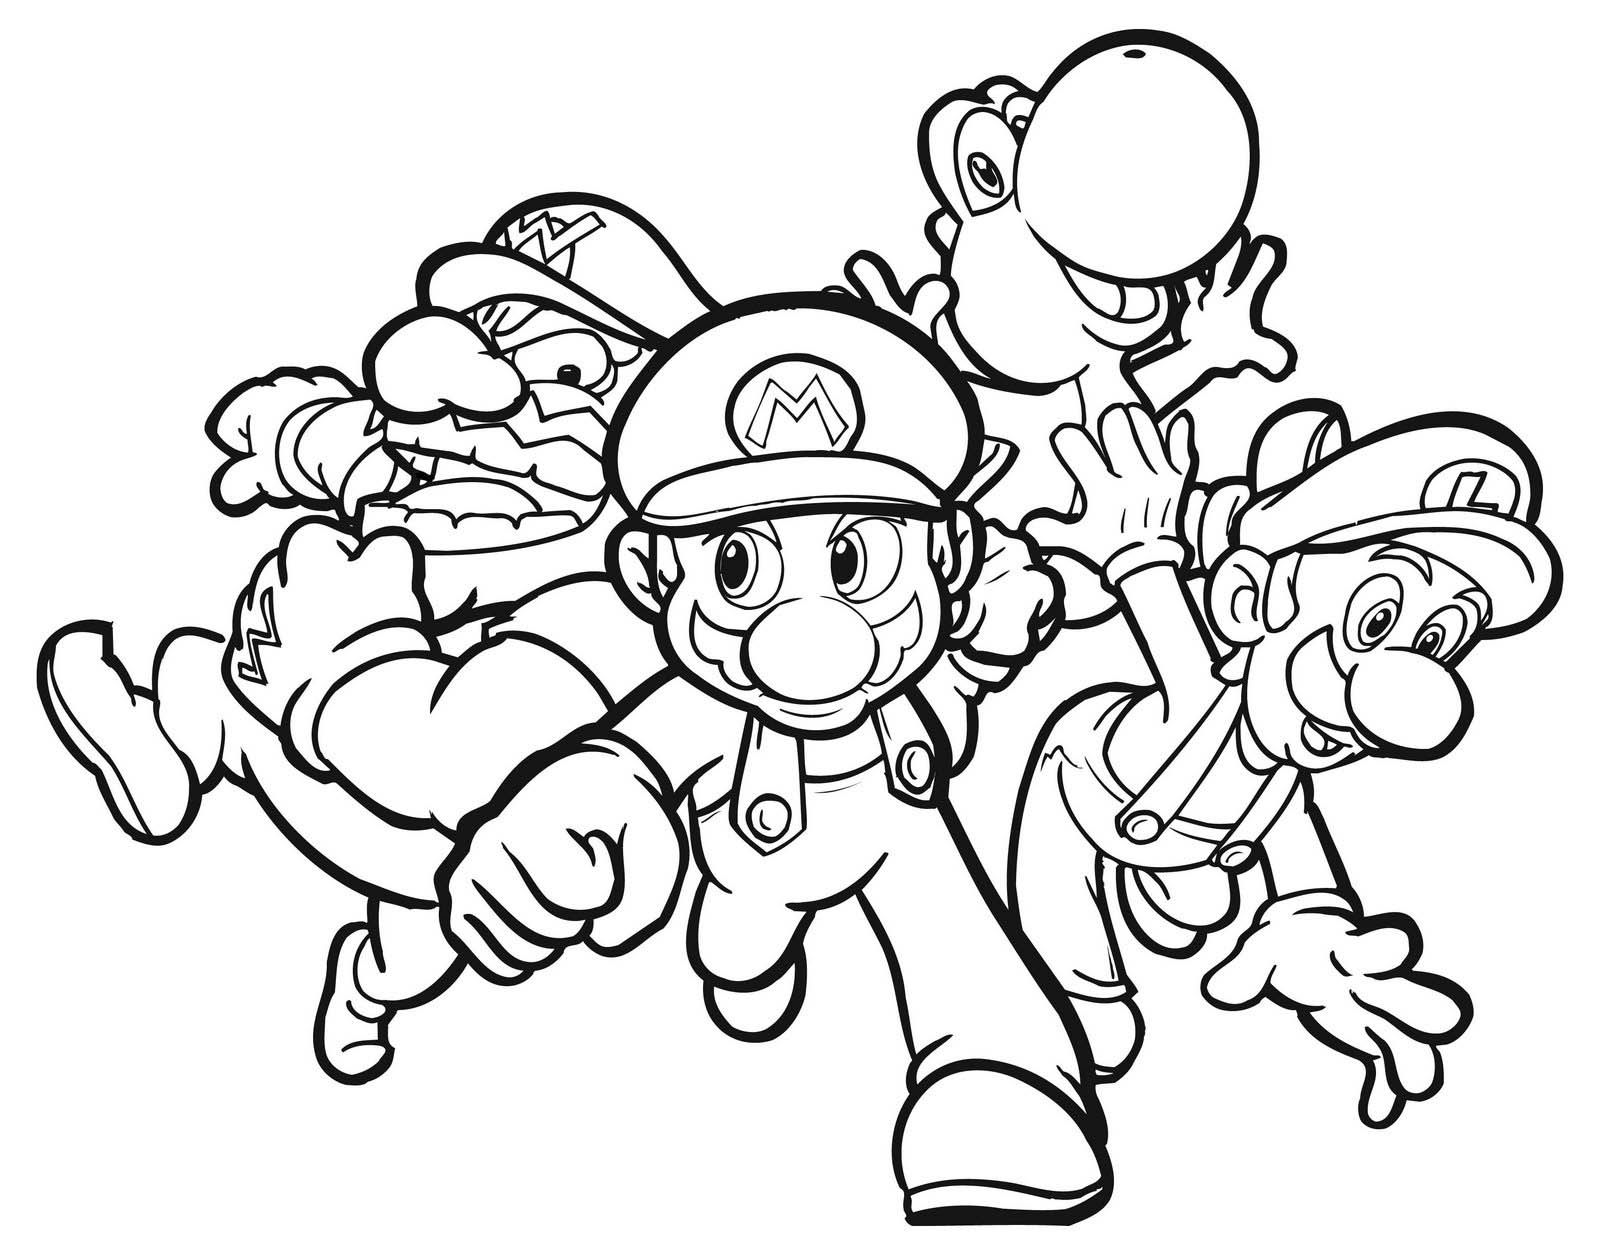 1600x1255 Awesome Super Mario Bros Coloring Pages Gallery Printable